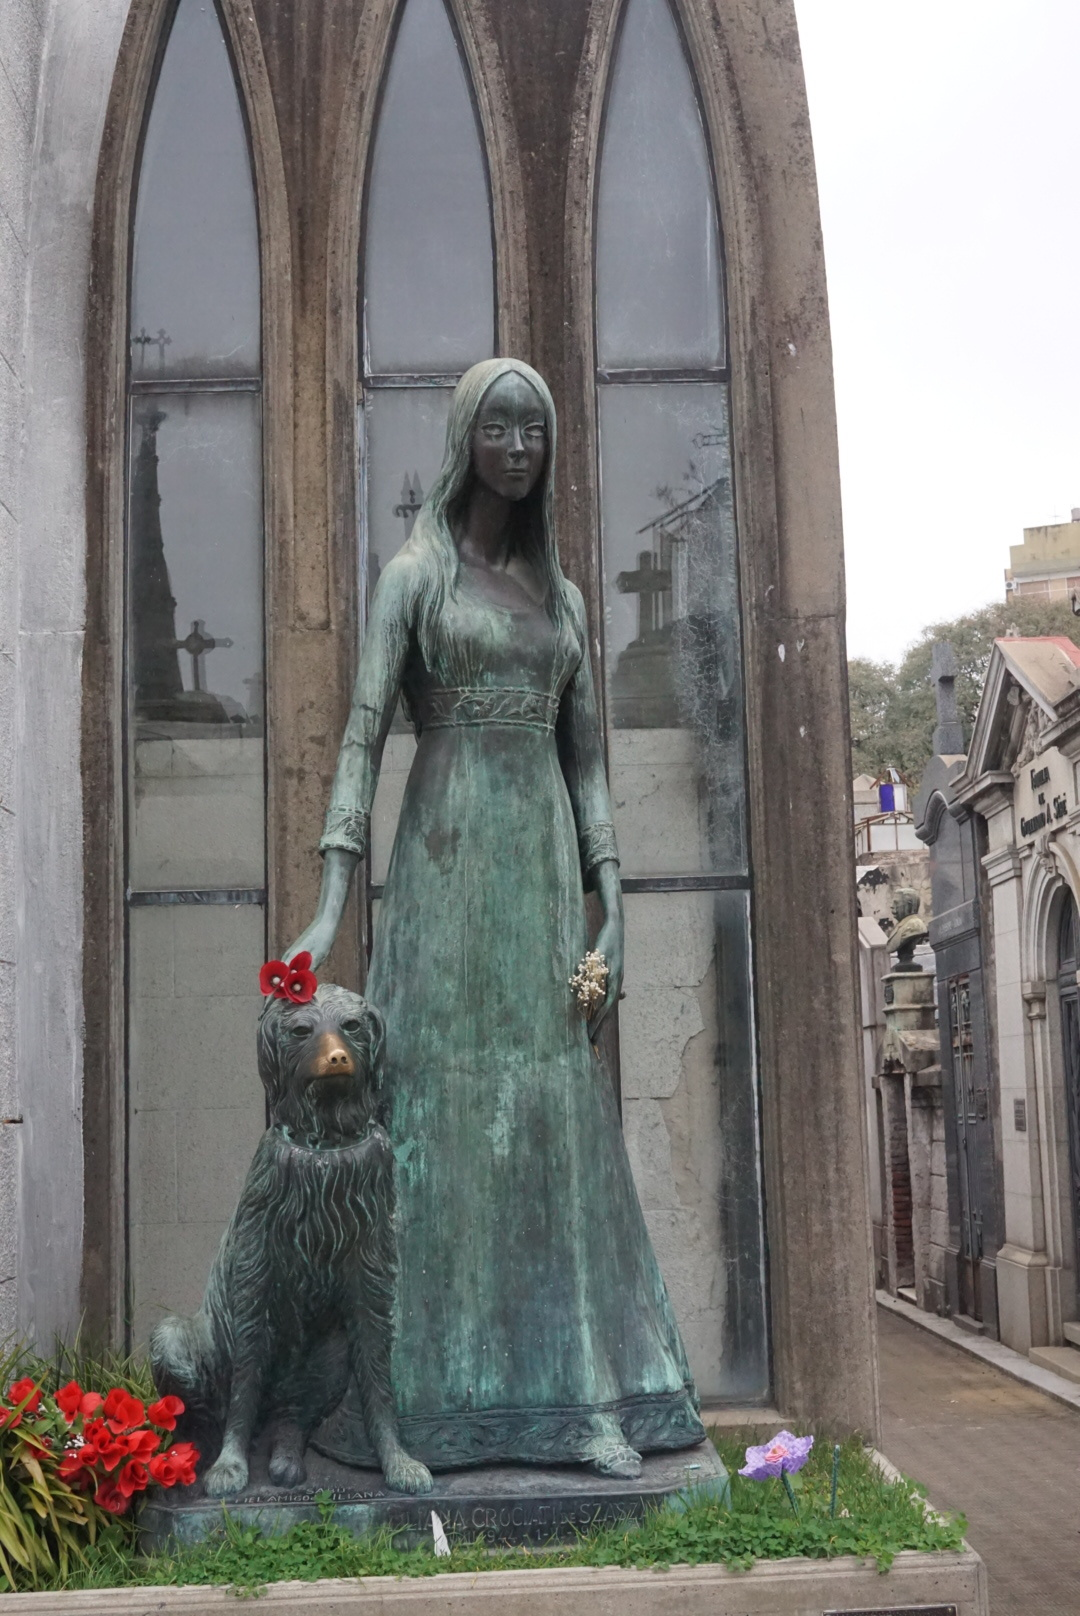 Pretty statue at the memorial of a very young person who died, in Recoleta.